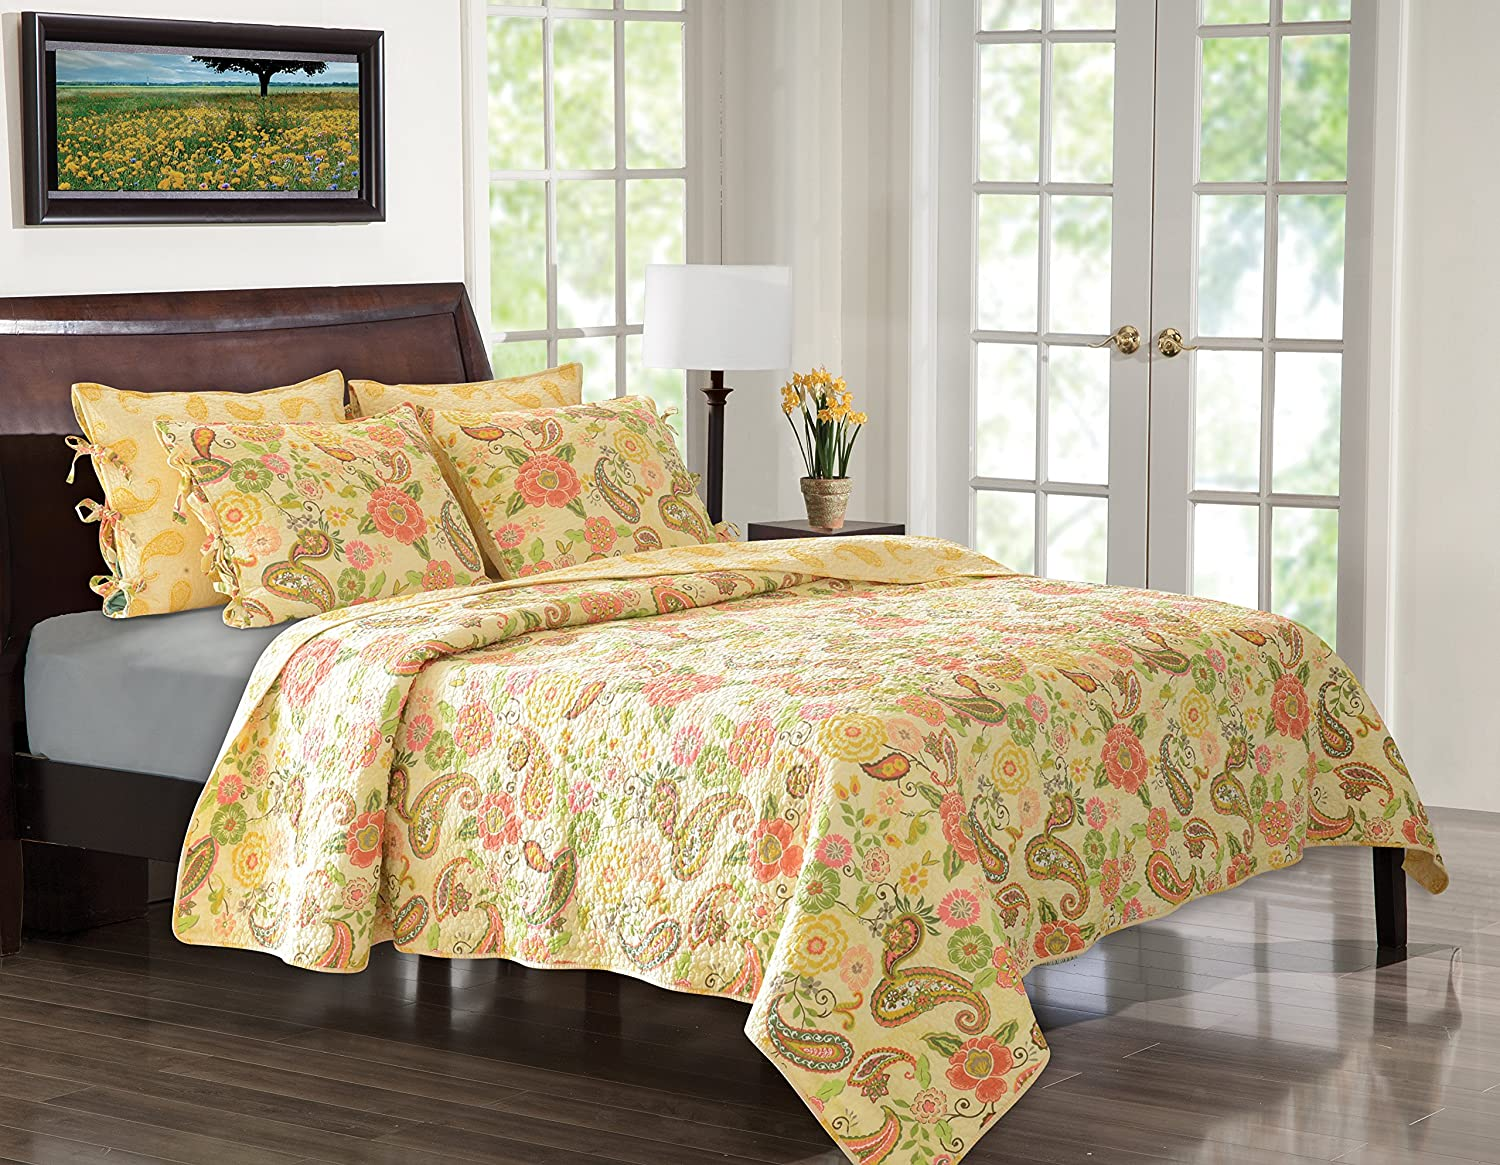 Greenland Home Sunset Paisley Quilt Set, King